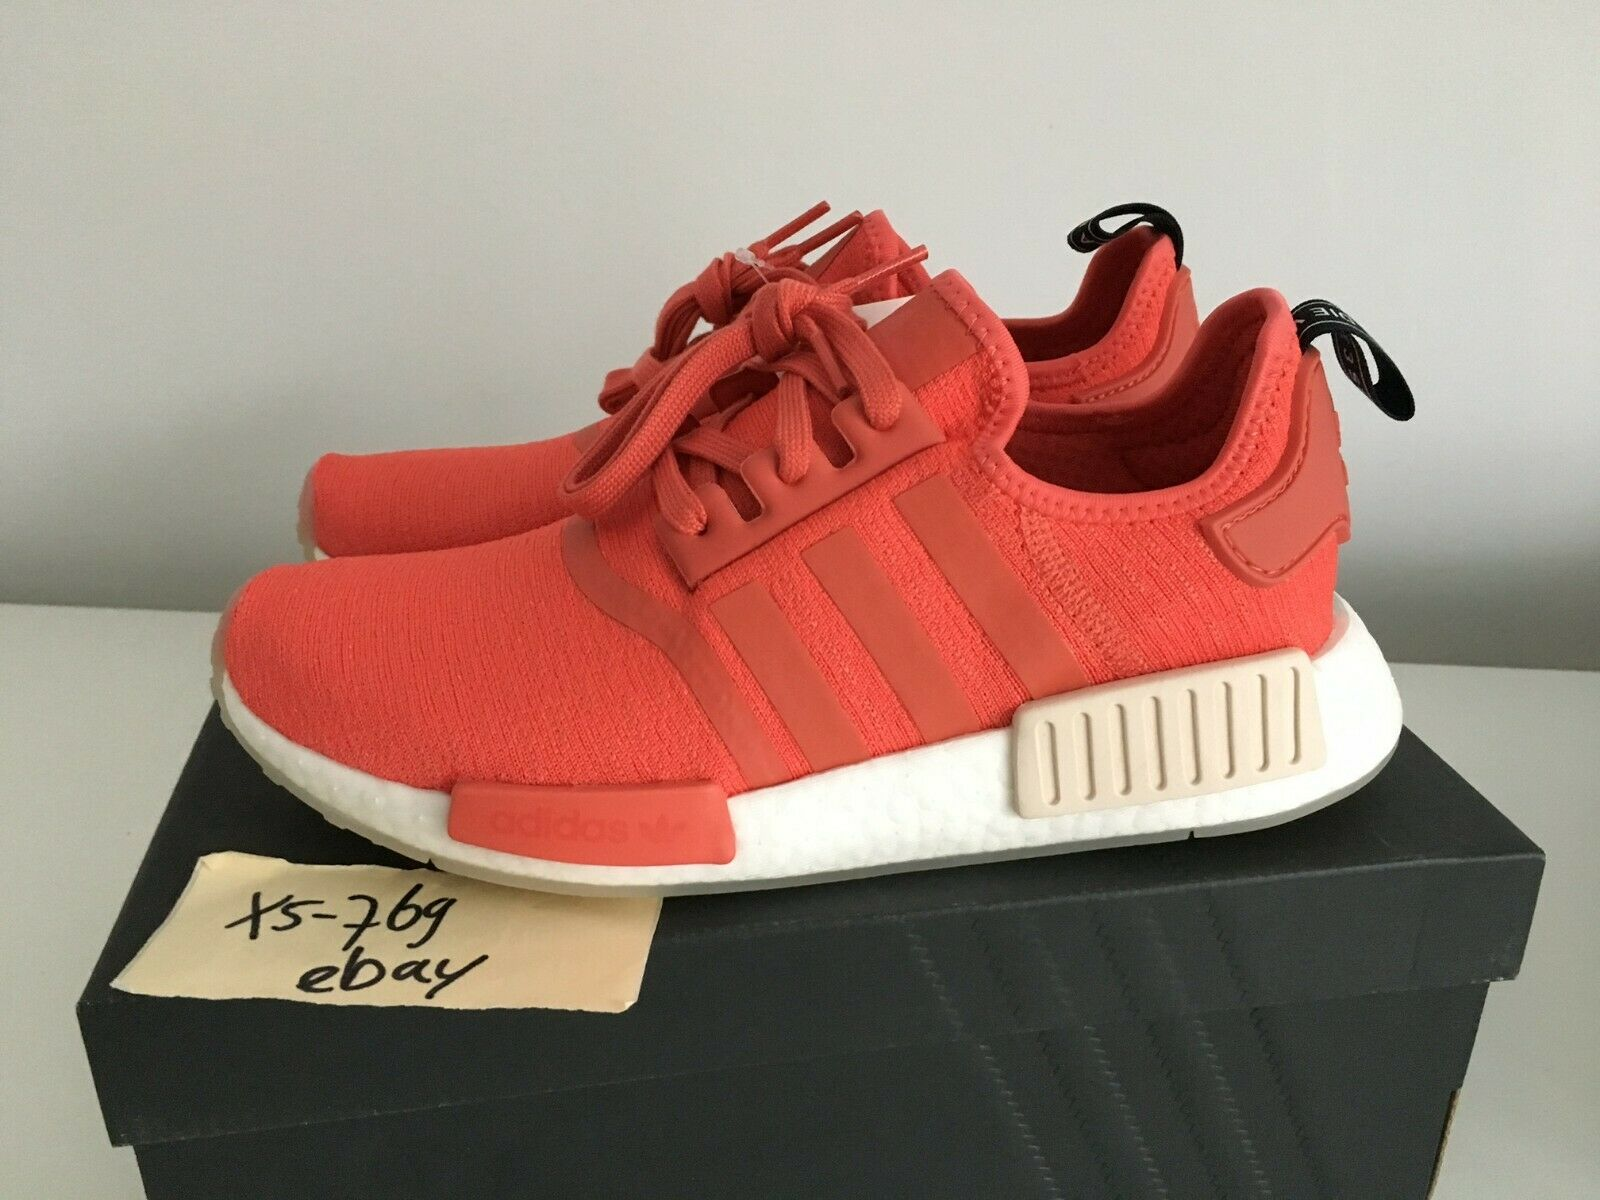 Adidas NMD R1 Wmns Trace Scarlet CQ2014 W Red White Black 3m 9 41 DS New in box